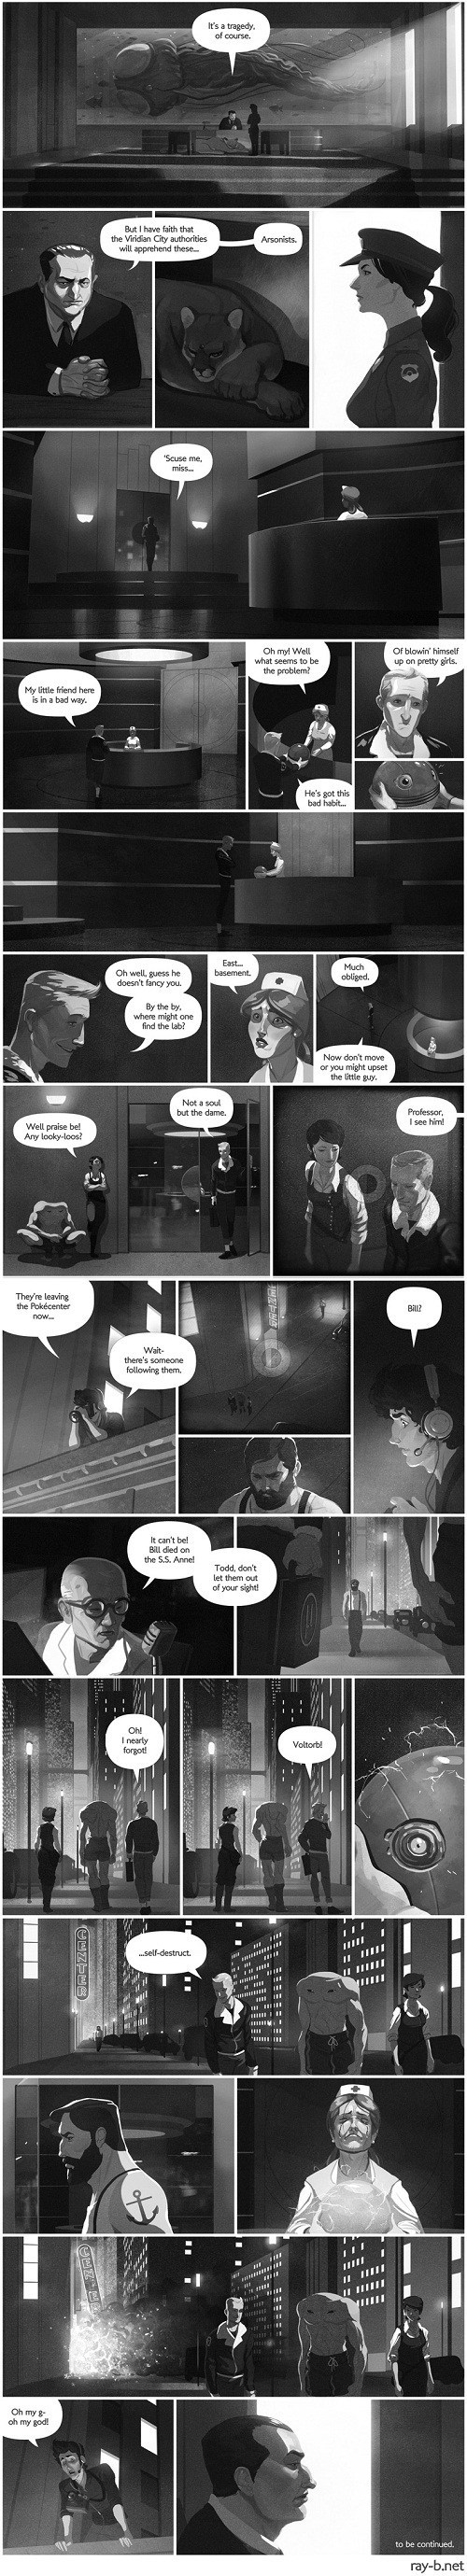 Pokémon voltorb todd snap self destruct comic noir